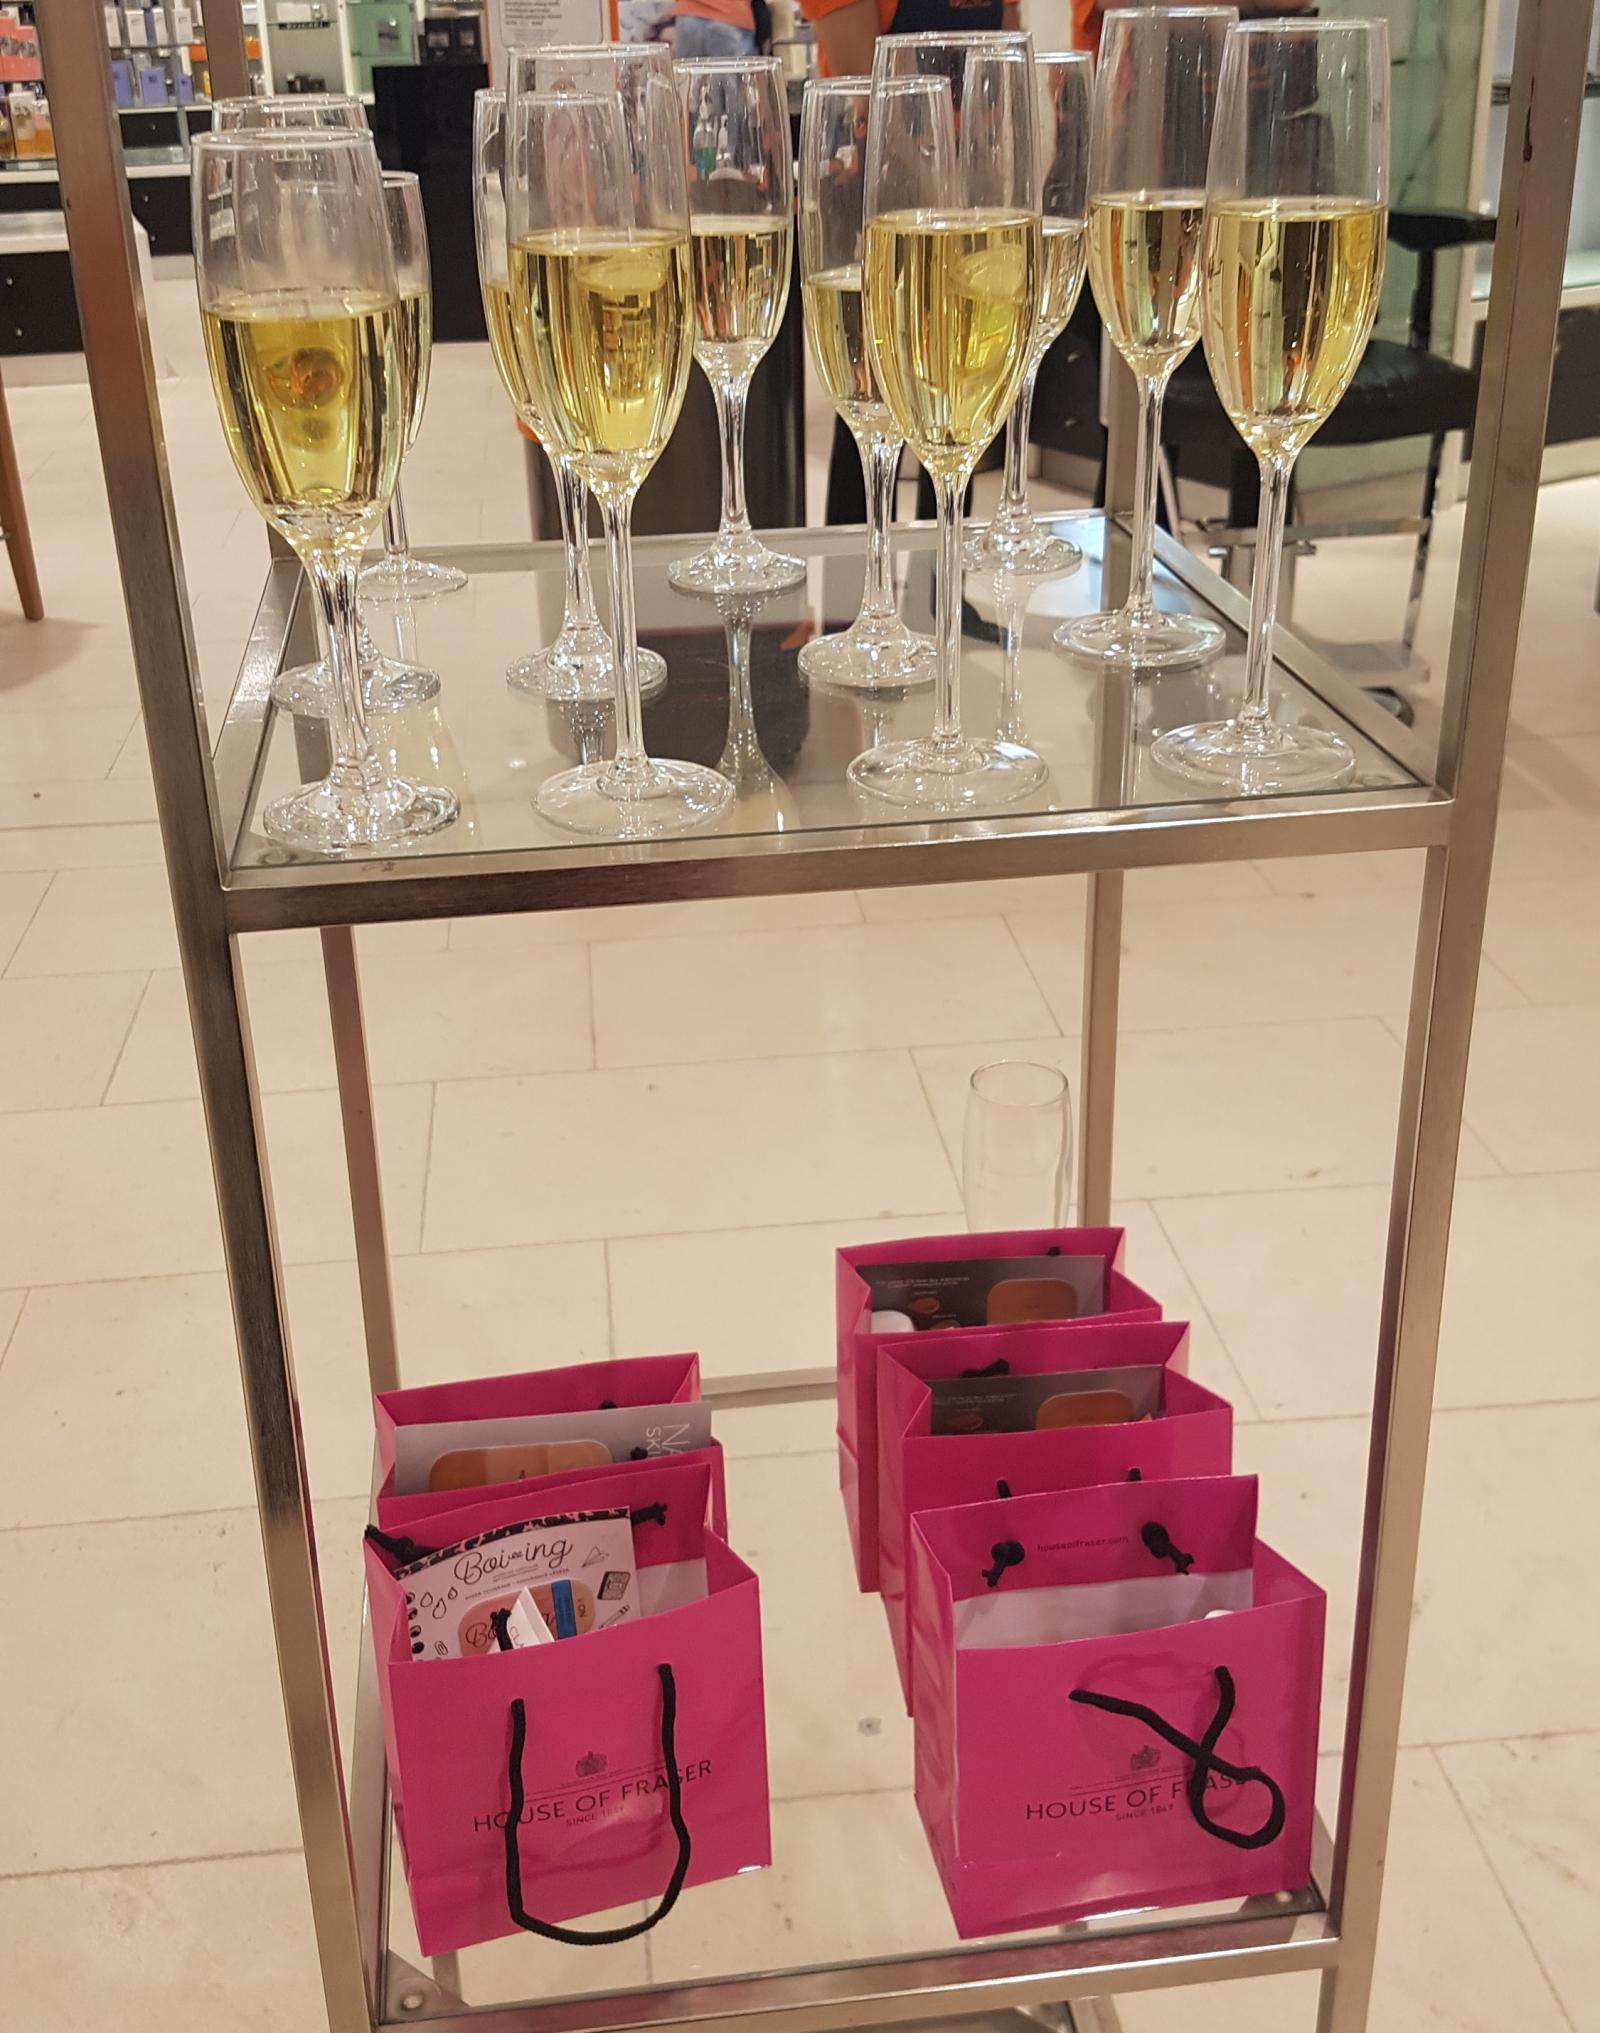 House of Fraser Nottingham Bloggers Event